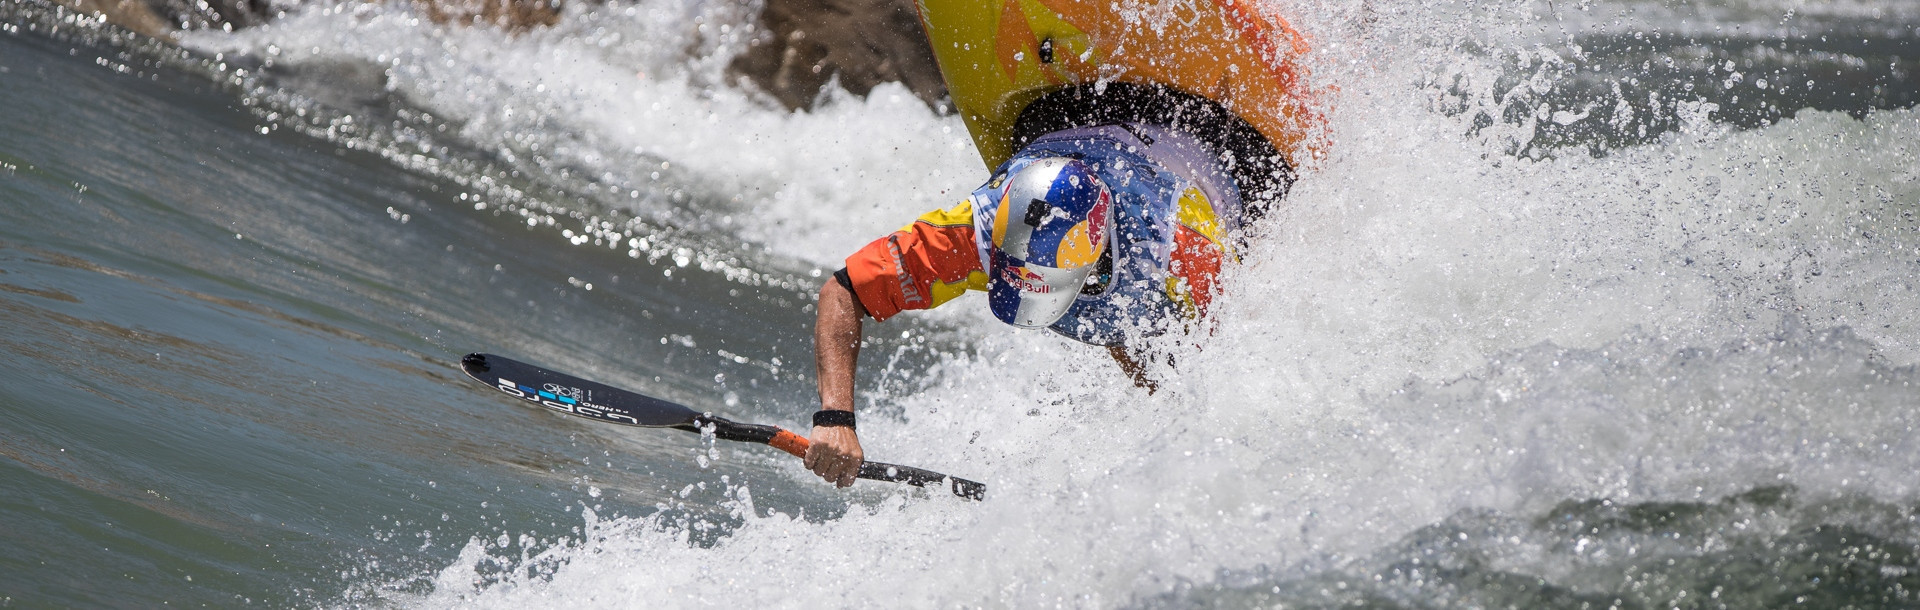 American Dane Jackson produced a dominant display in the preliminary rounds of the men's kayak senior event at the ICF Canoe Freestyle Kayak Championships ©ICF/Peter Holcombe